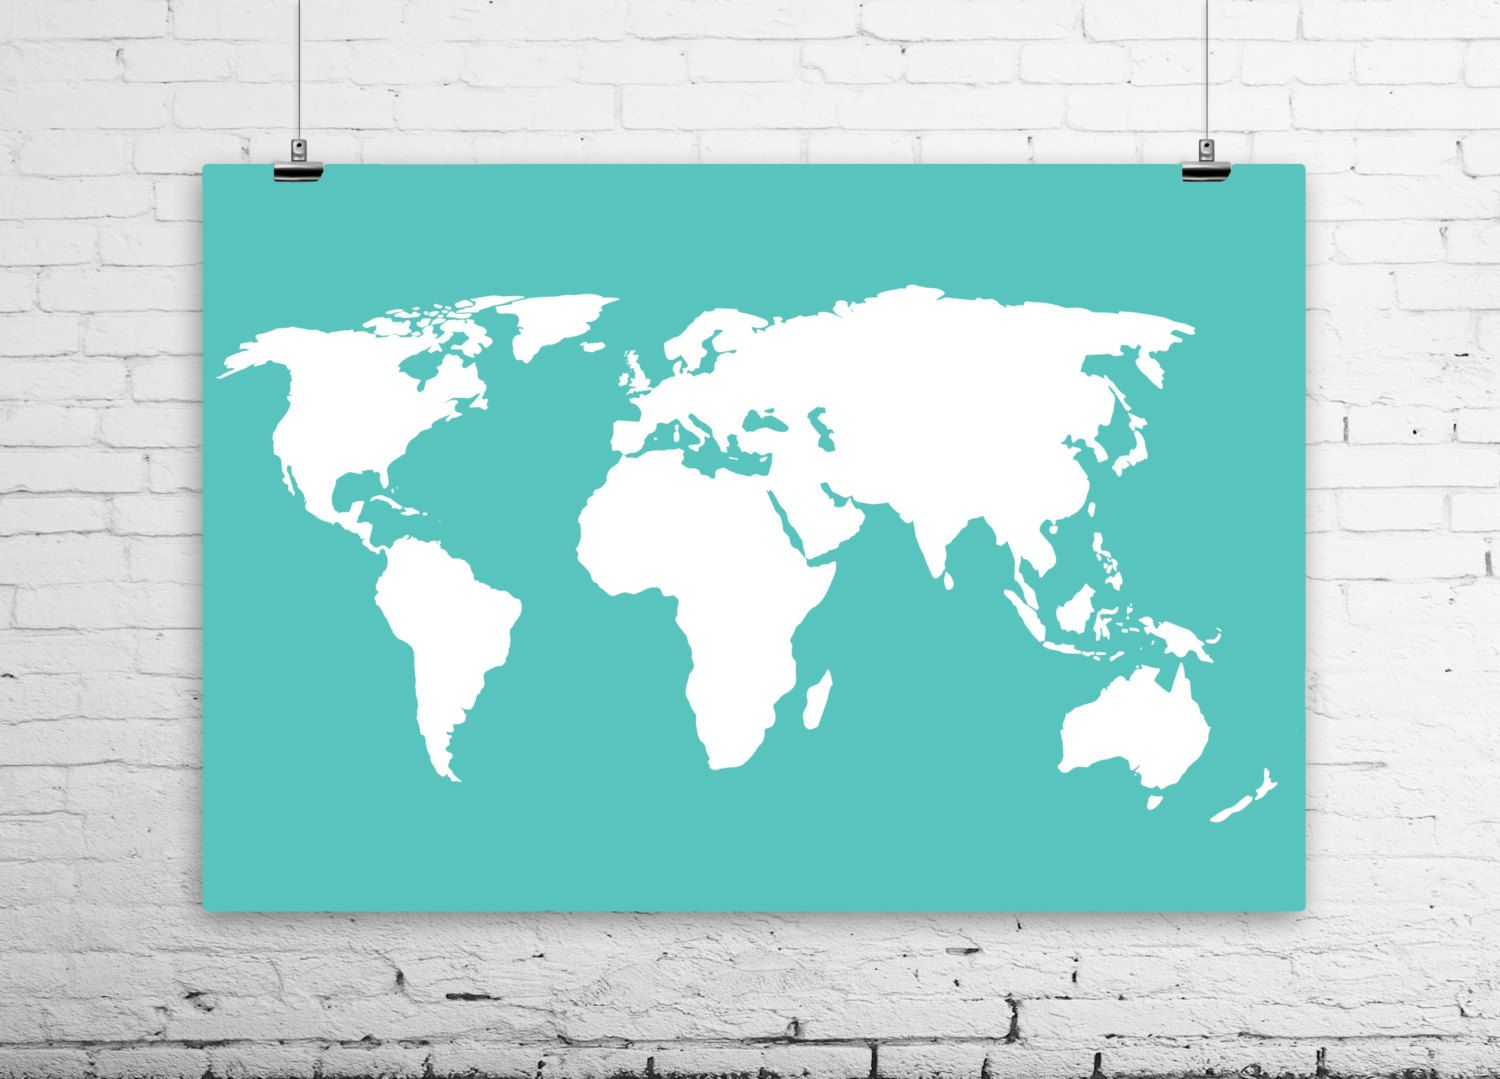 New to bysamantha on etsy world map poster sizes from 4x6 to new to bysamantha on etsy world map poster sizes from 4x6 to 36x48 large world map aqua and white dorm travel nursery decor sku 021 a 900 usd gumiabroncs Image collections